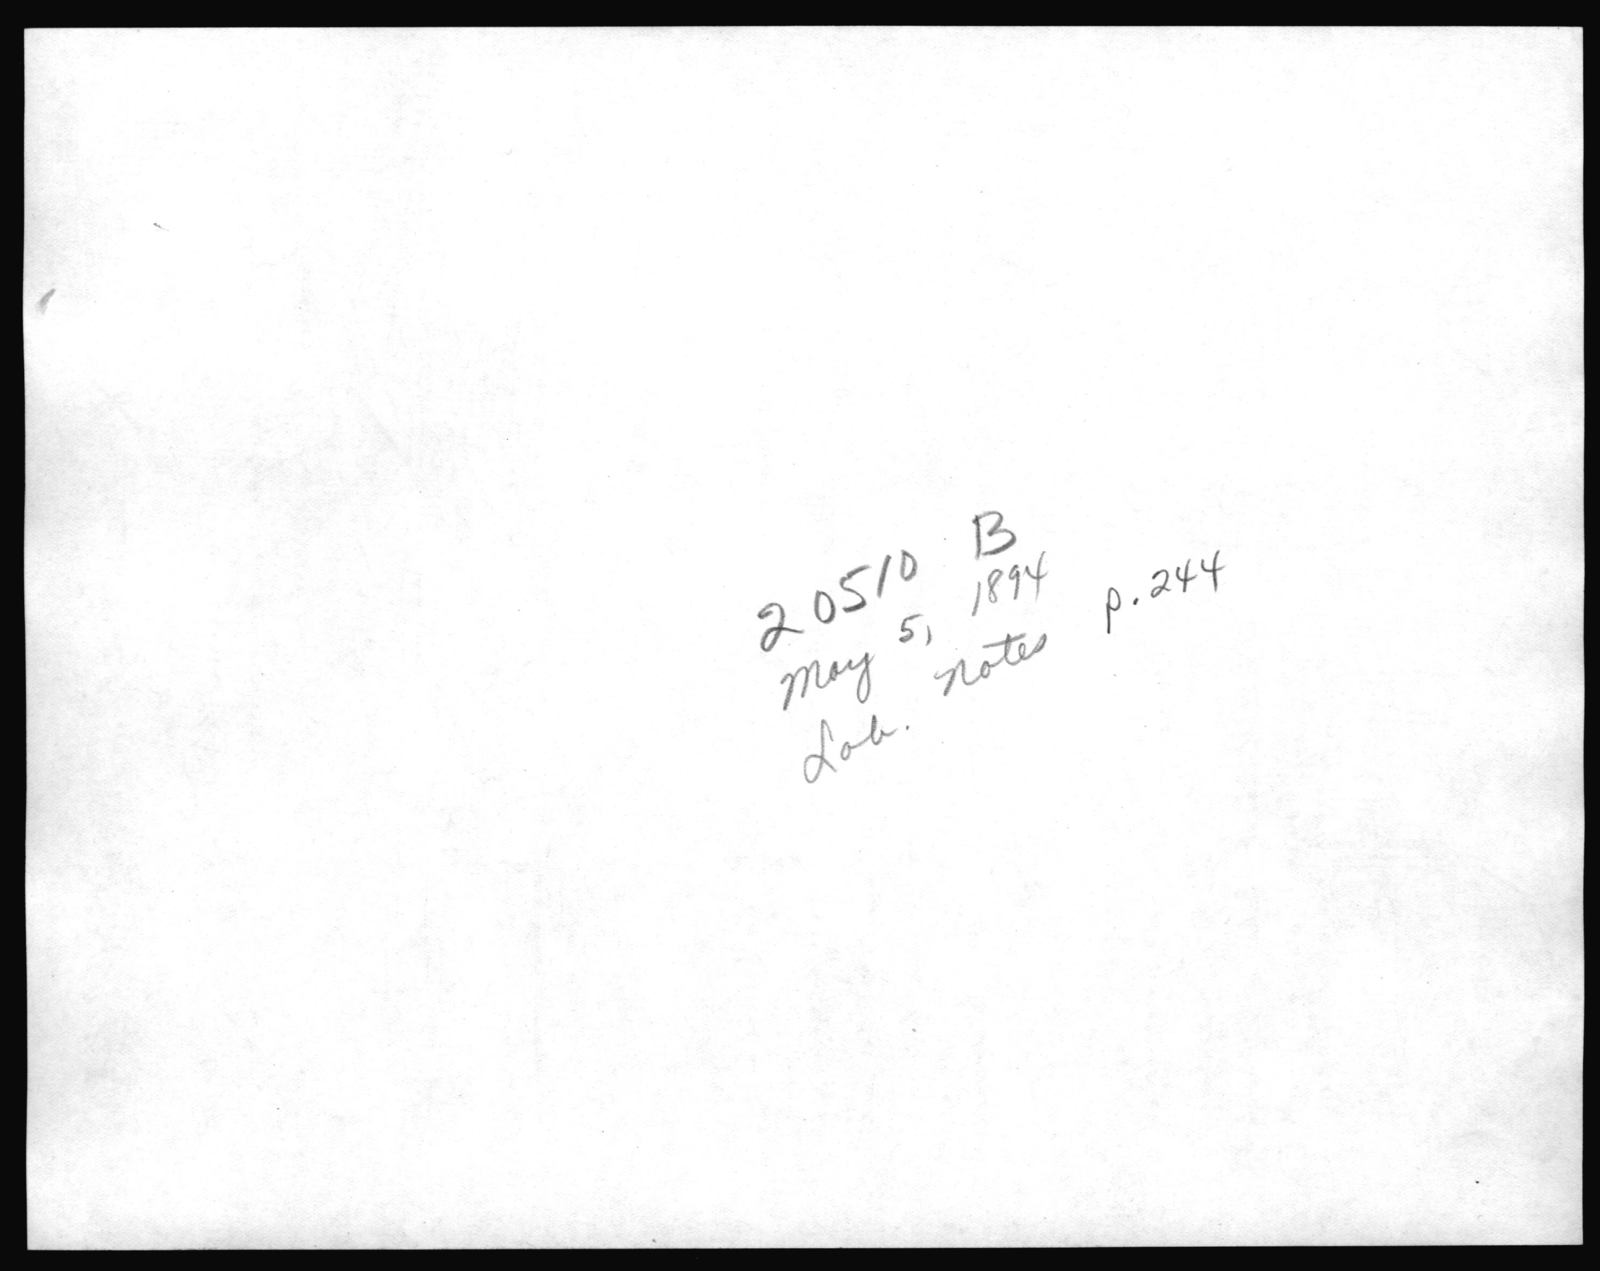 Drawings by Alexander Graham Bell?, from December 29, 1891 to September 13, 1894